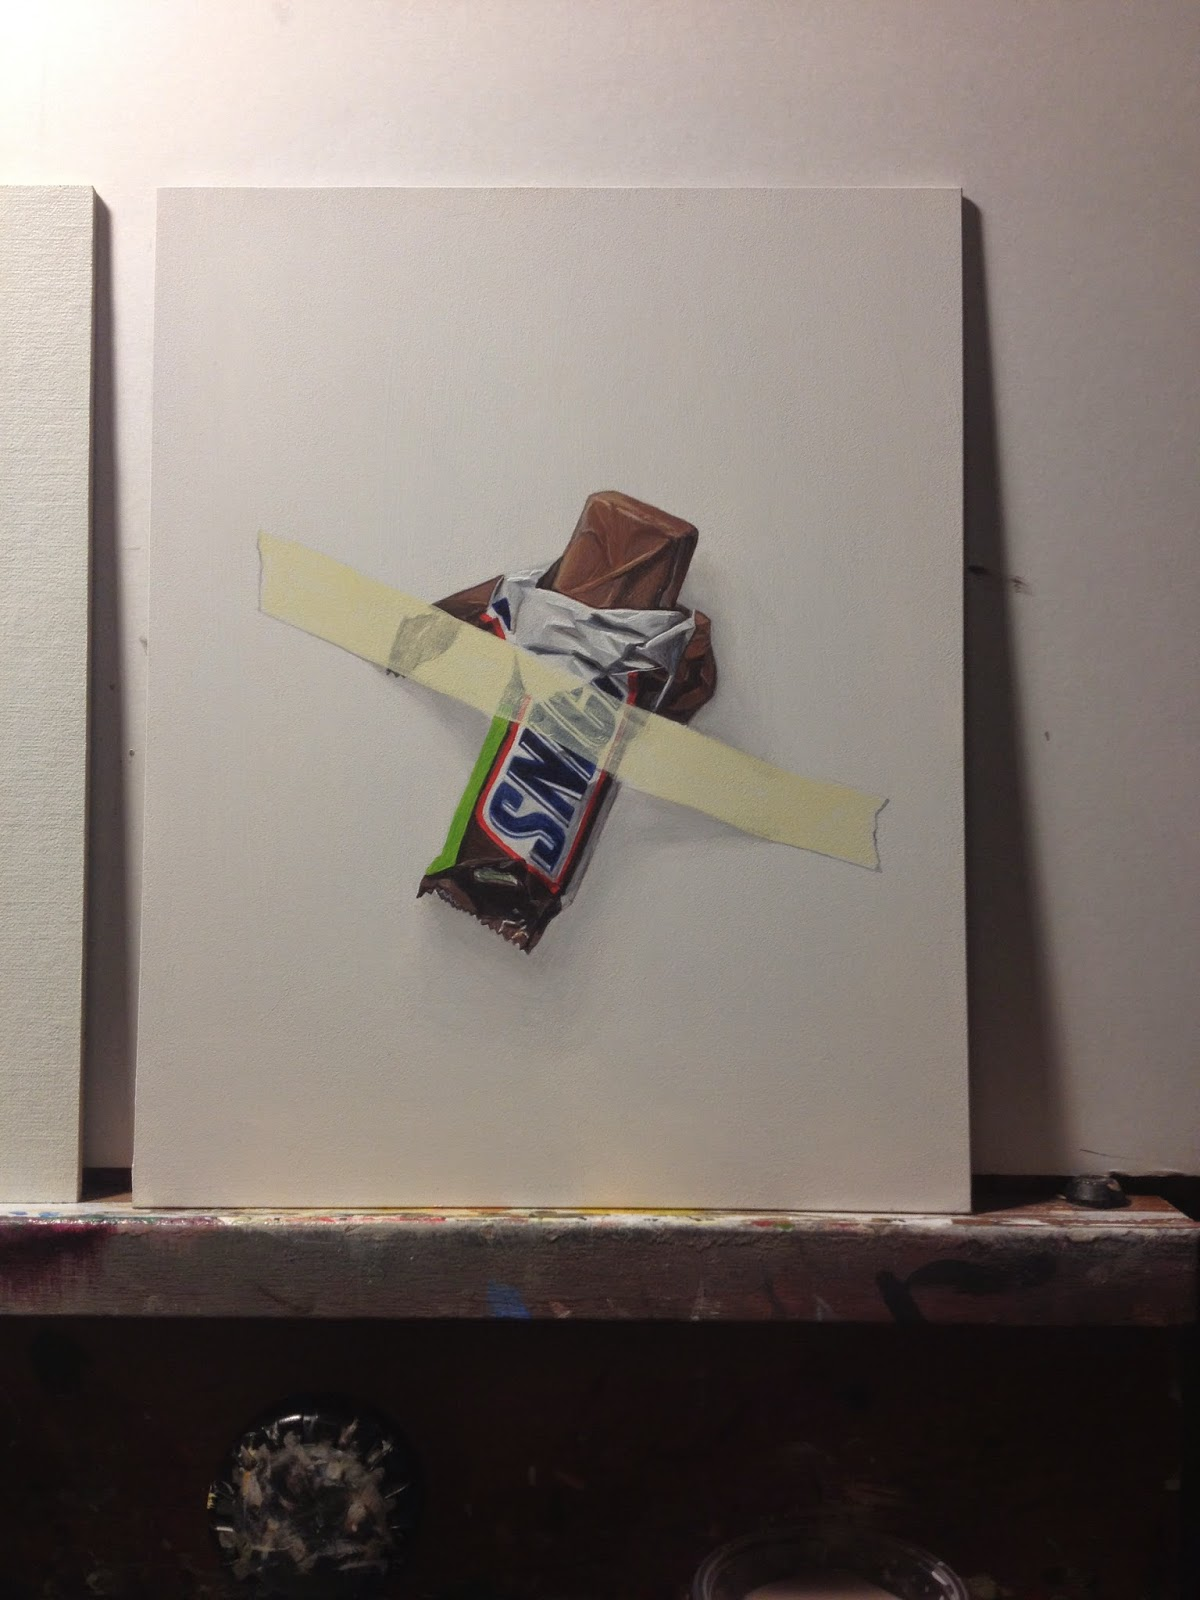 paintings by kim testone on the easel step by step photos of snickers chocolate candy bar. Black Bedroom Furniture Sets. Home Design Ideas